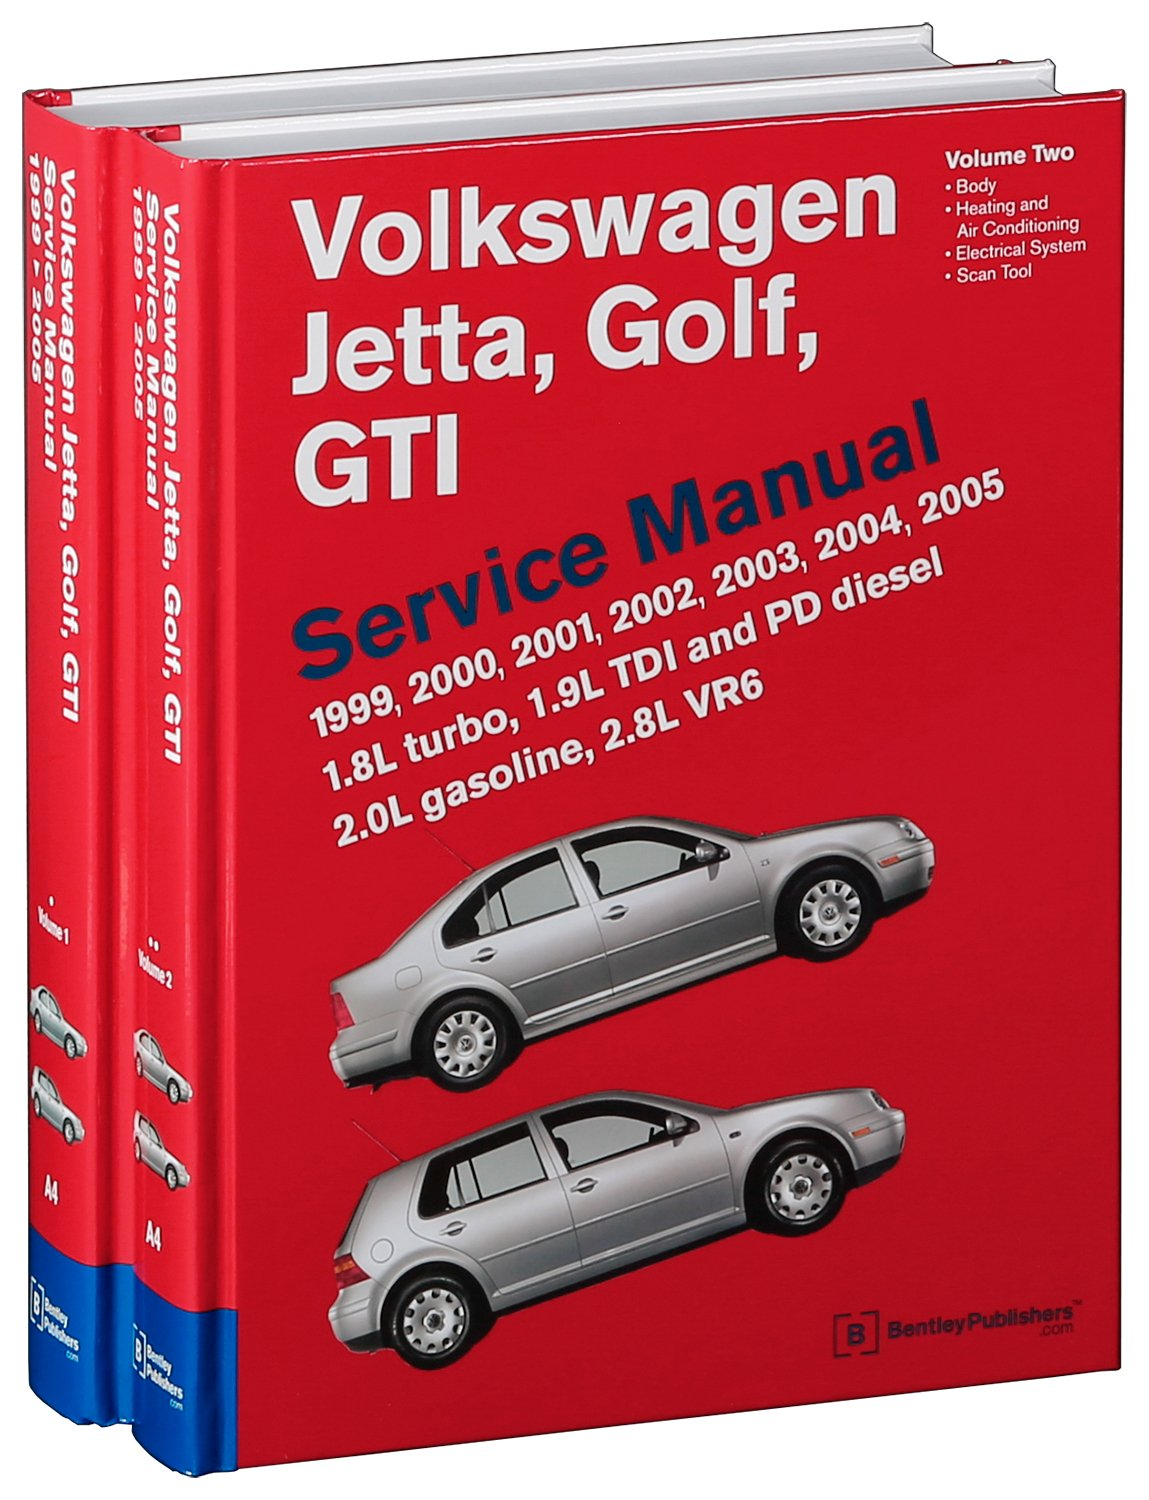 volkswagen jetta golf gti a4 service manual 1999 2000 2001 rh amazon co uk vw golf mk4 bentley manual pdf vw golf mk4 bentley manual pdf